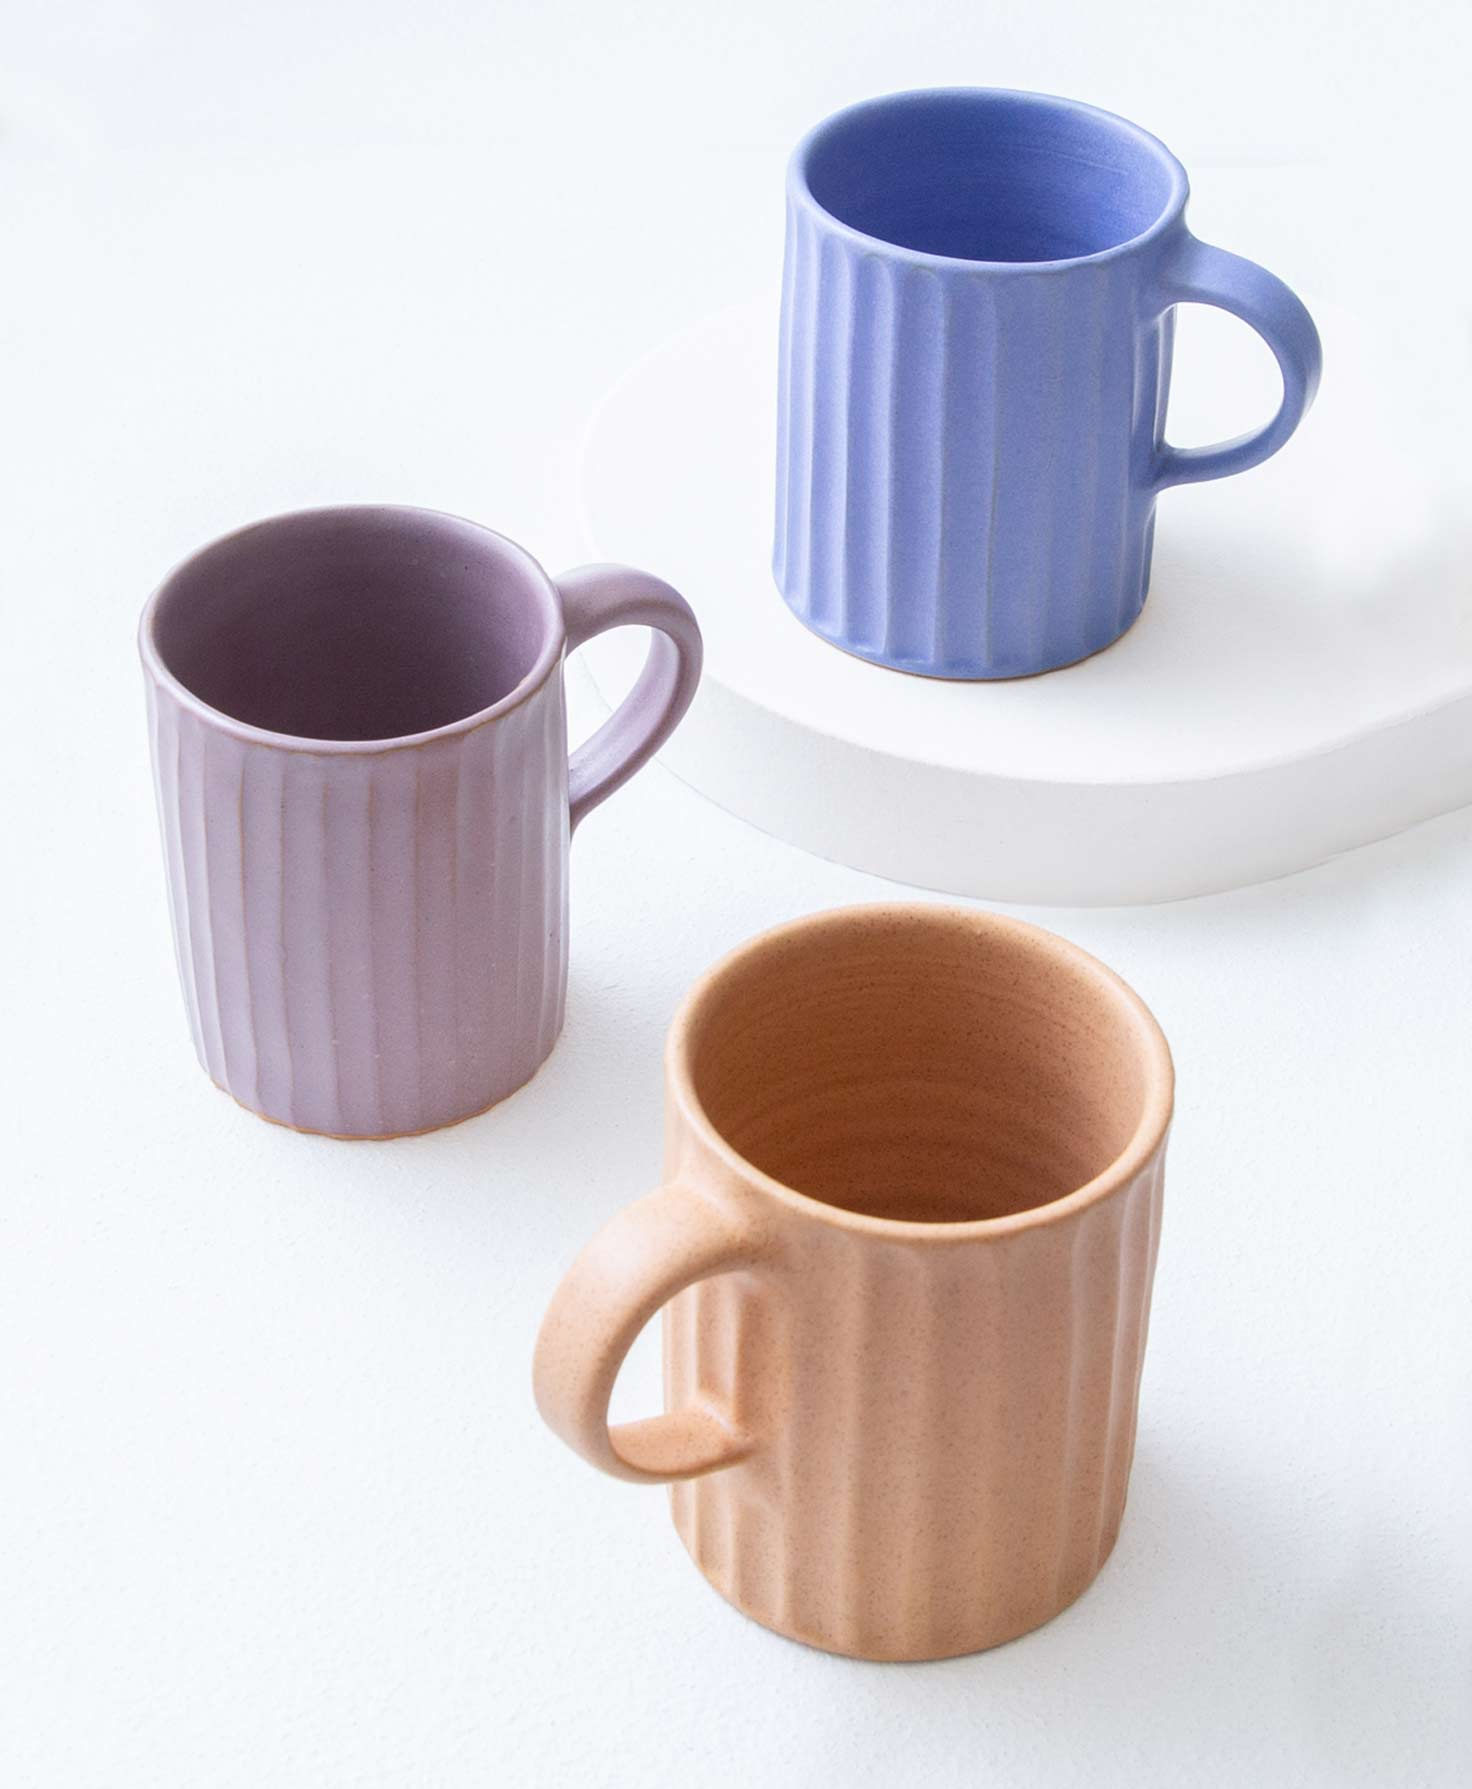 The three colors of Textured Ceramic Mugs sit together on a white surface. One mug is cobalt, one is lilac, and one is a peachy sand color. Each of the mugs has an identical shape. They are made of stoneware and have a natural, handmade texture. All the way around the mugs, vertical indentations run from the top to the bottom. The effect feels like someone ran their fingers from the top of the clay to the bottom, leaving regular rows of indentations. The mugs have handles made of stoneware that is the same color as their bodies.